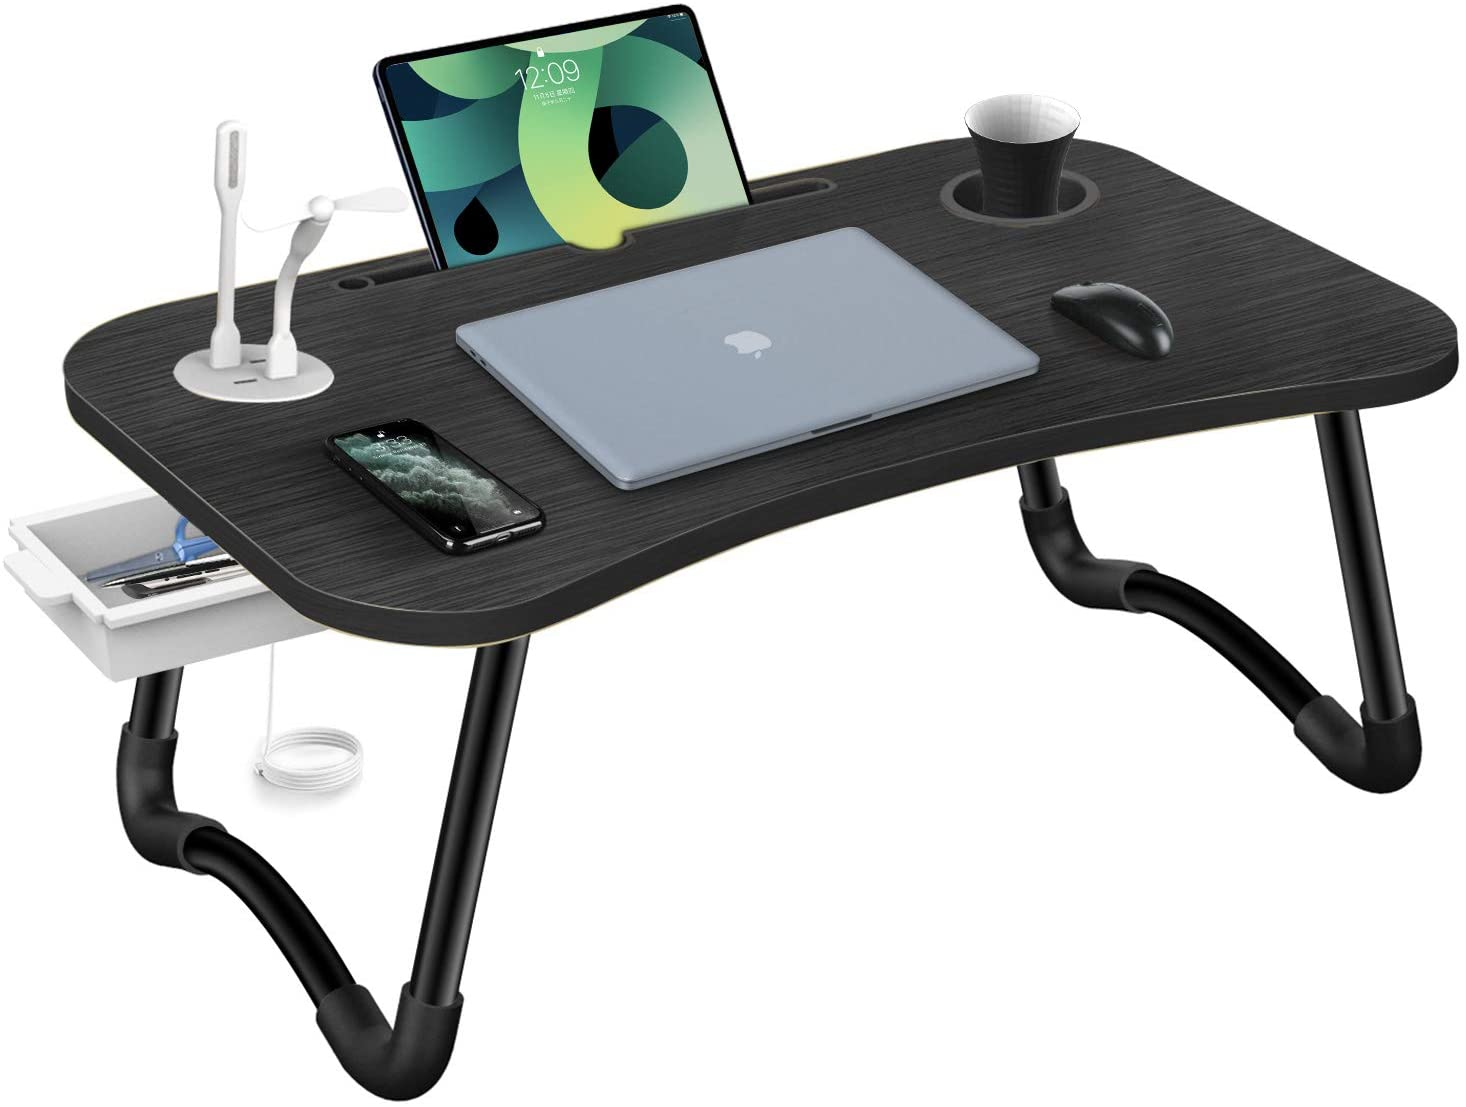 Review of HLHome Laptop Bed Desk,Portable Foldable Laptop Bed Tray Table with USB Charger